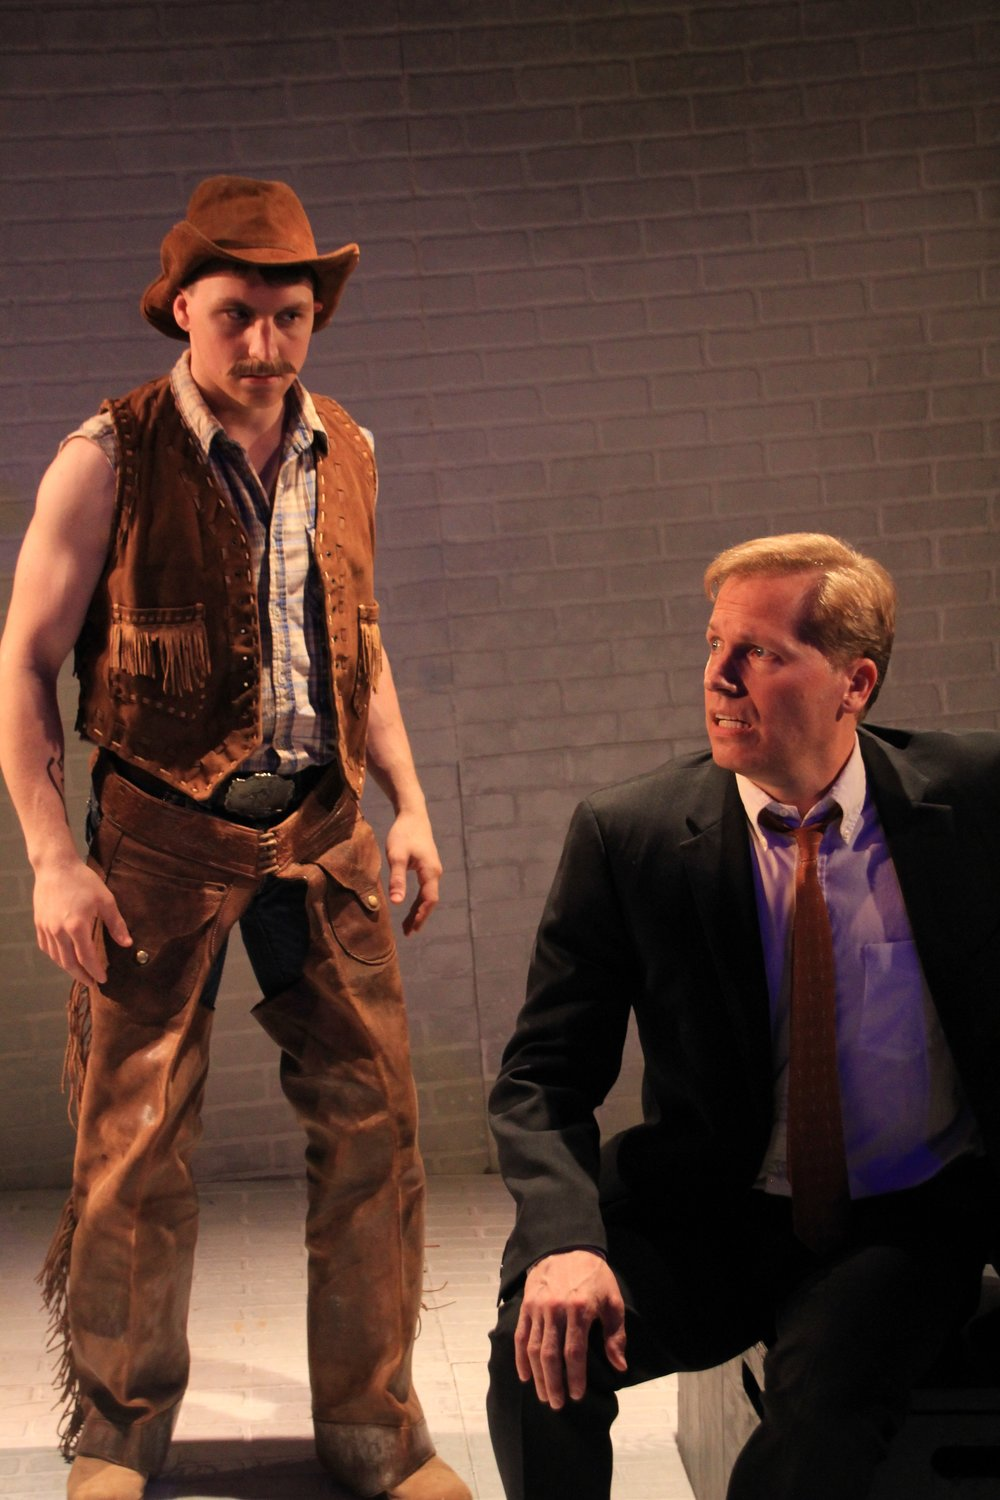 MFA in Acting candidate Bryce Crumlish (l.) with Company Member David Arrow (r.)  in a production of  Sam's Lament  by Company Member Robert Wray, directed by Company Member Sal Trapani, at The Playroom Theatre, June 2017.